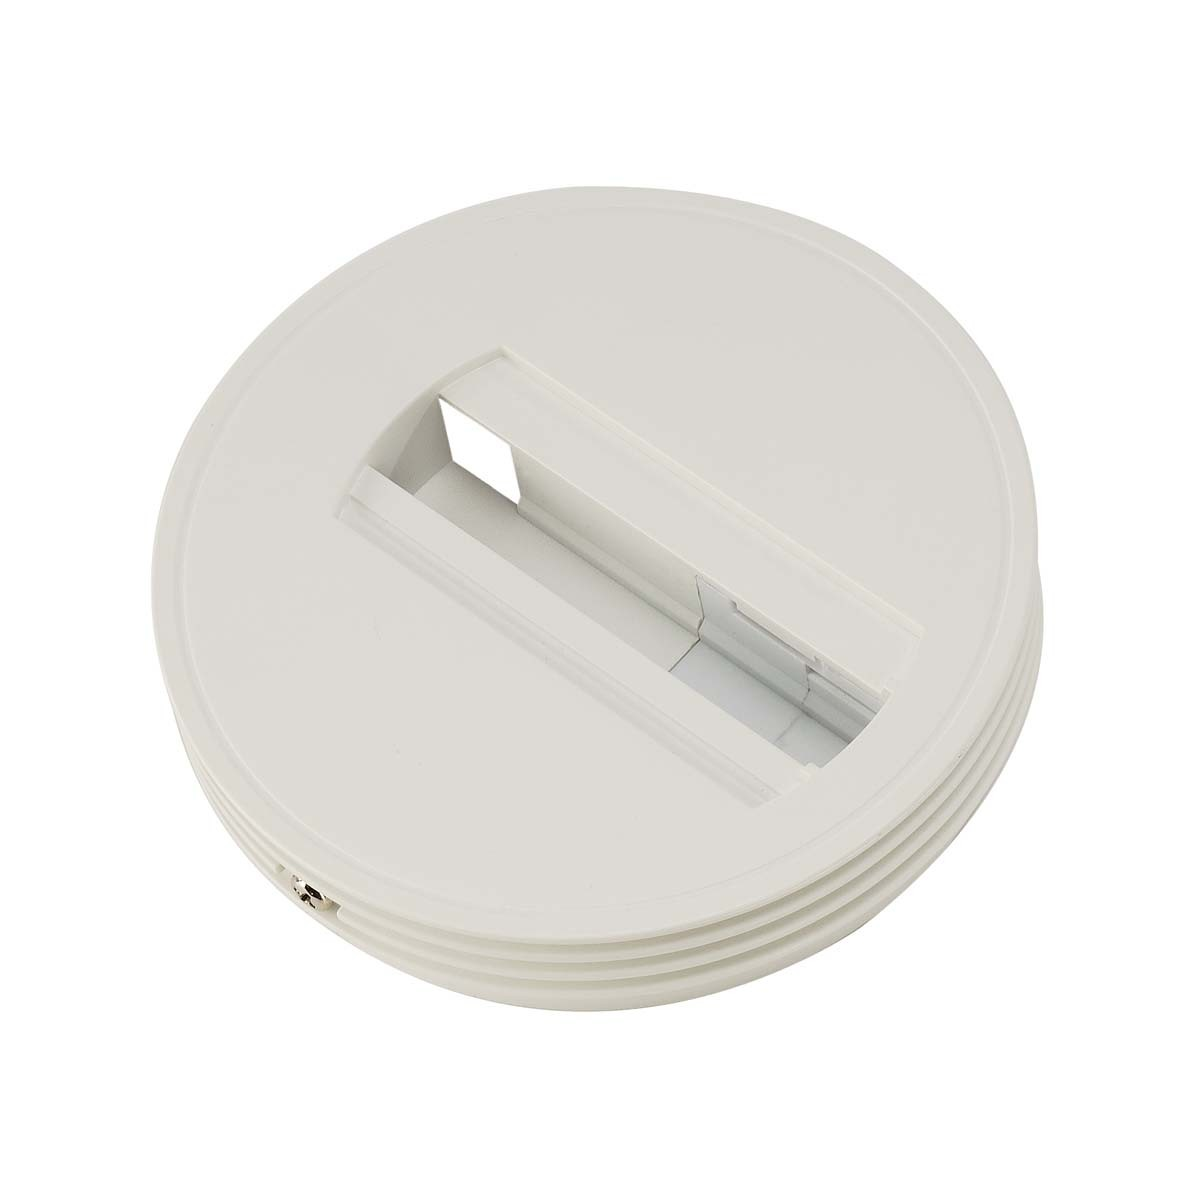 SLV 143381 Ceiling Canopy White 1 Circuit 240V Track Accessory